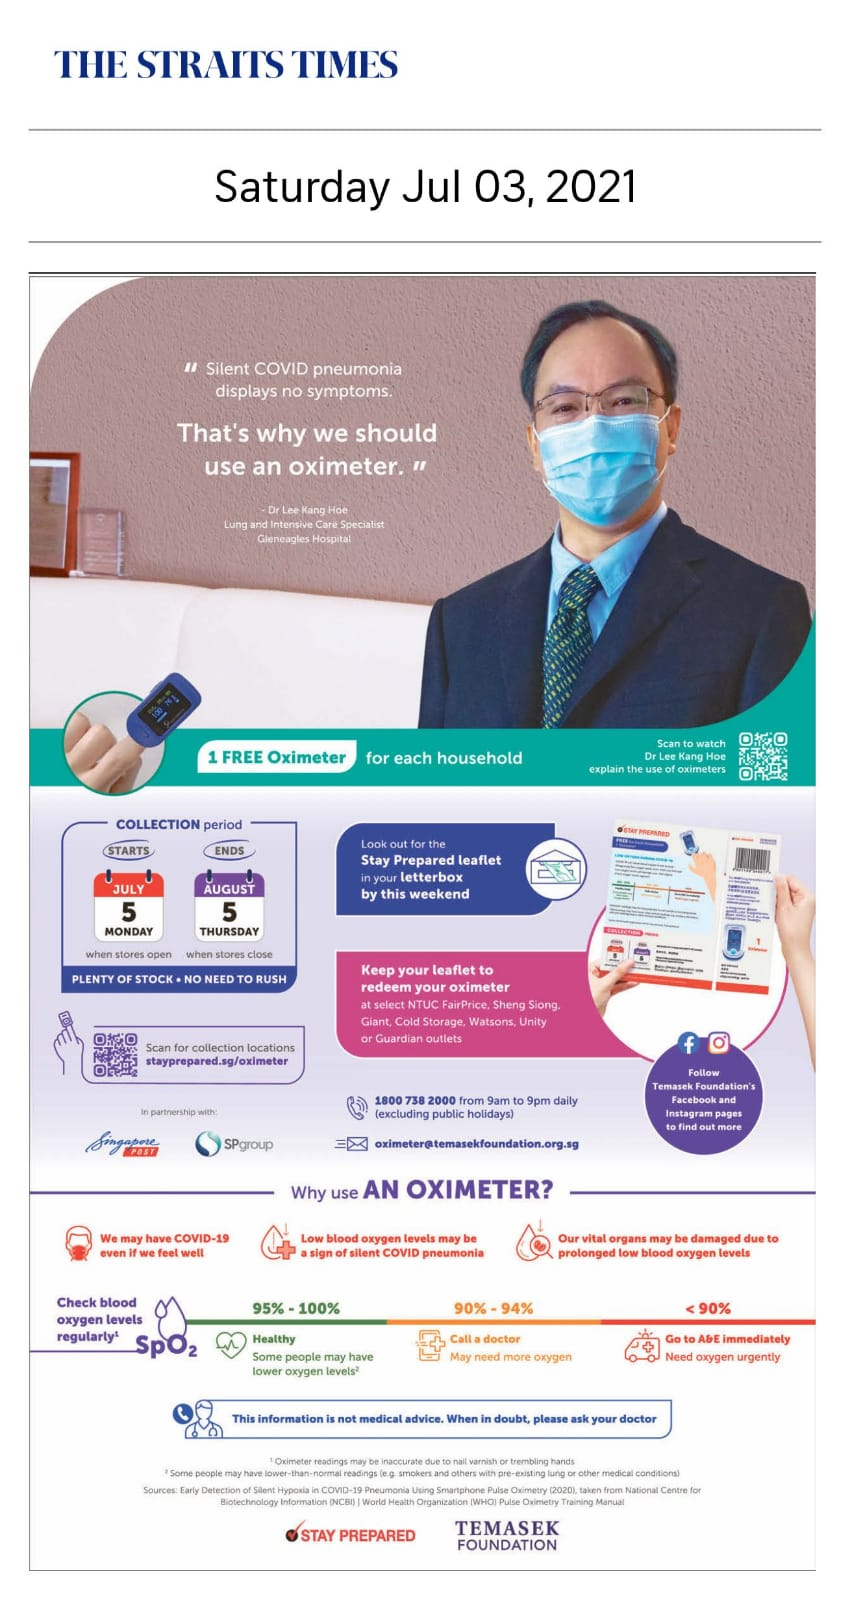 That's why we should use an oximeter - Published in The Straits Times July 03, 2021